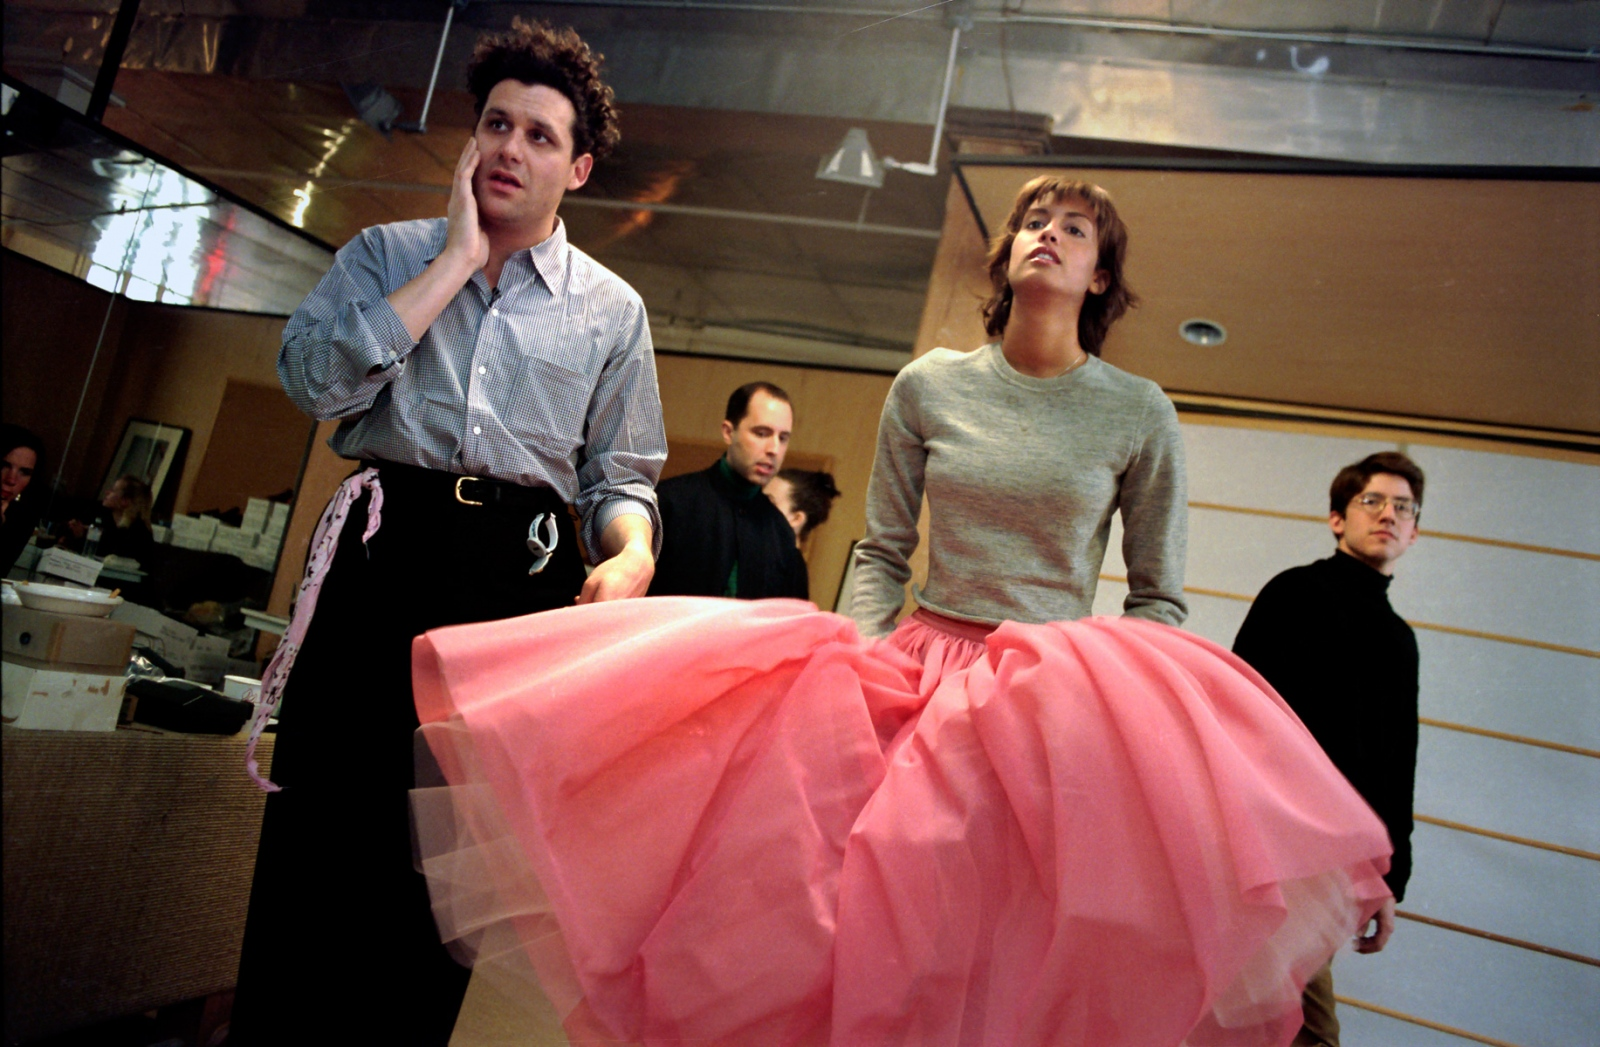 Designer Isaac Mizrahi does a last minute fitting on a voluminous evening skirt worn by model Yasmeen Ghauri. A model's fee for a show includes time spent at fittings. Spring '94.